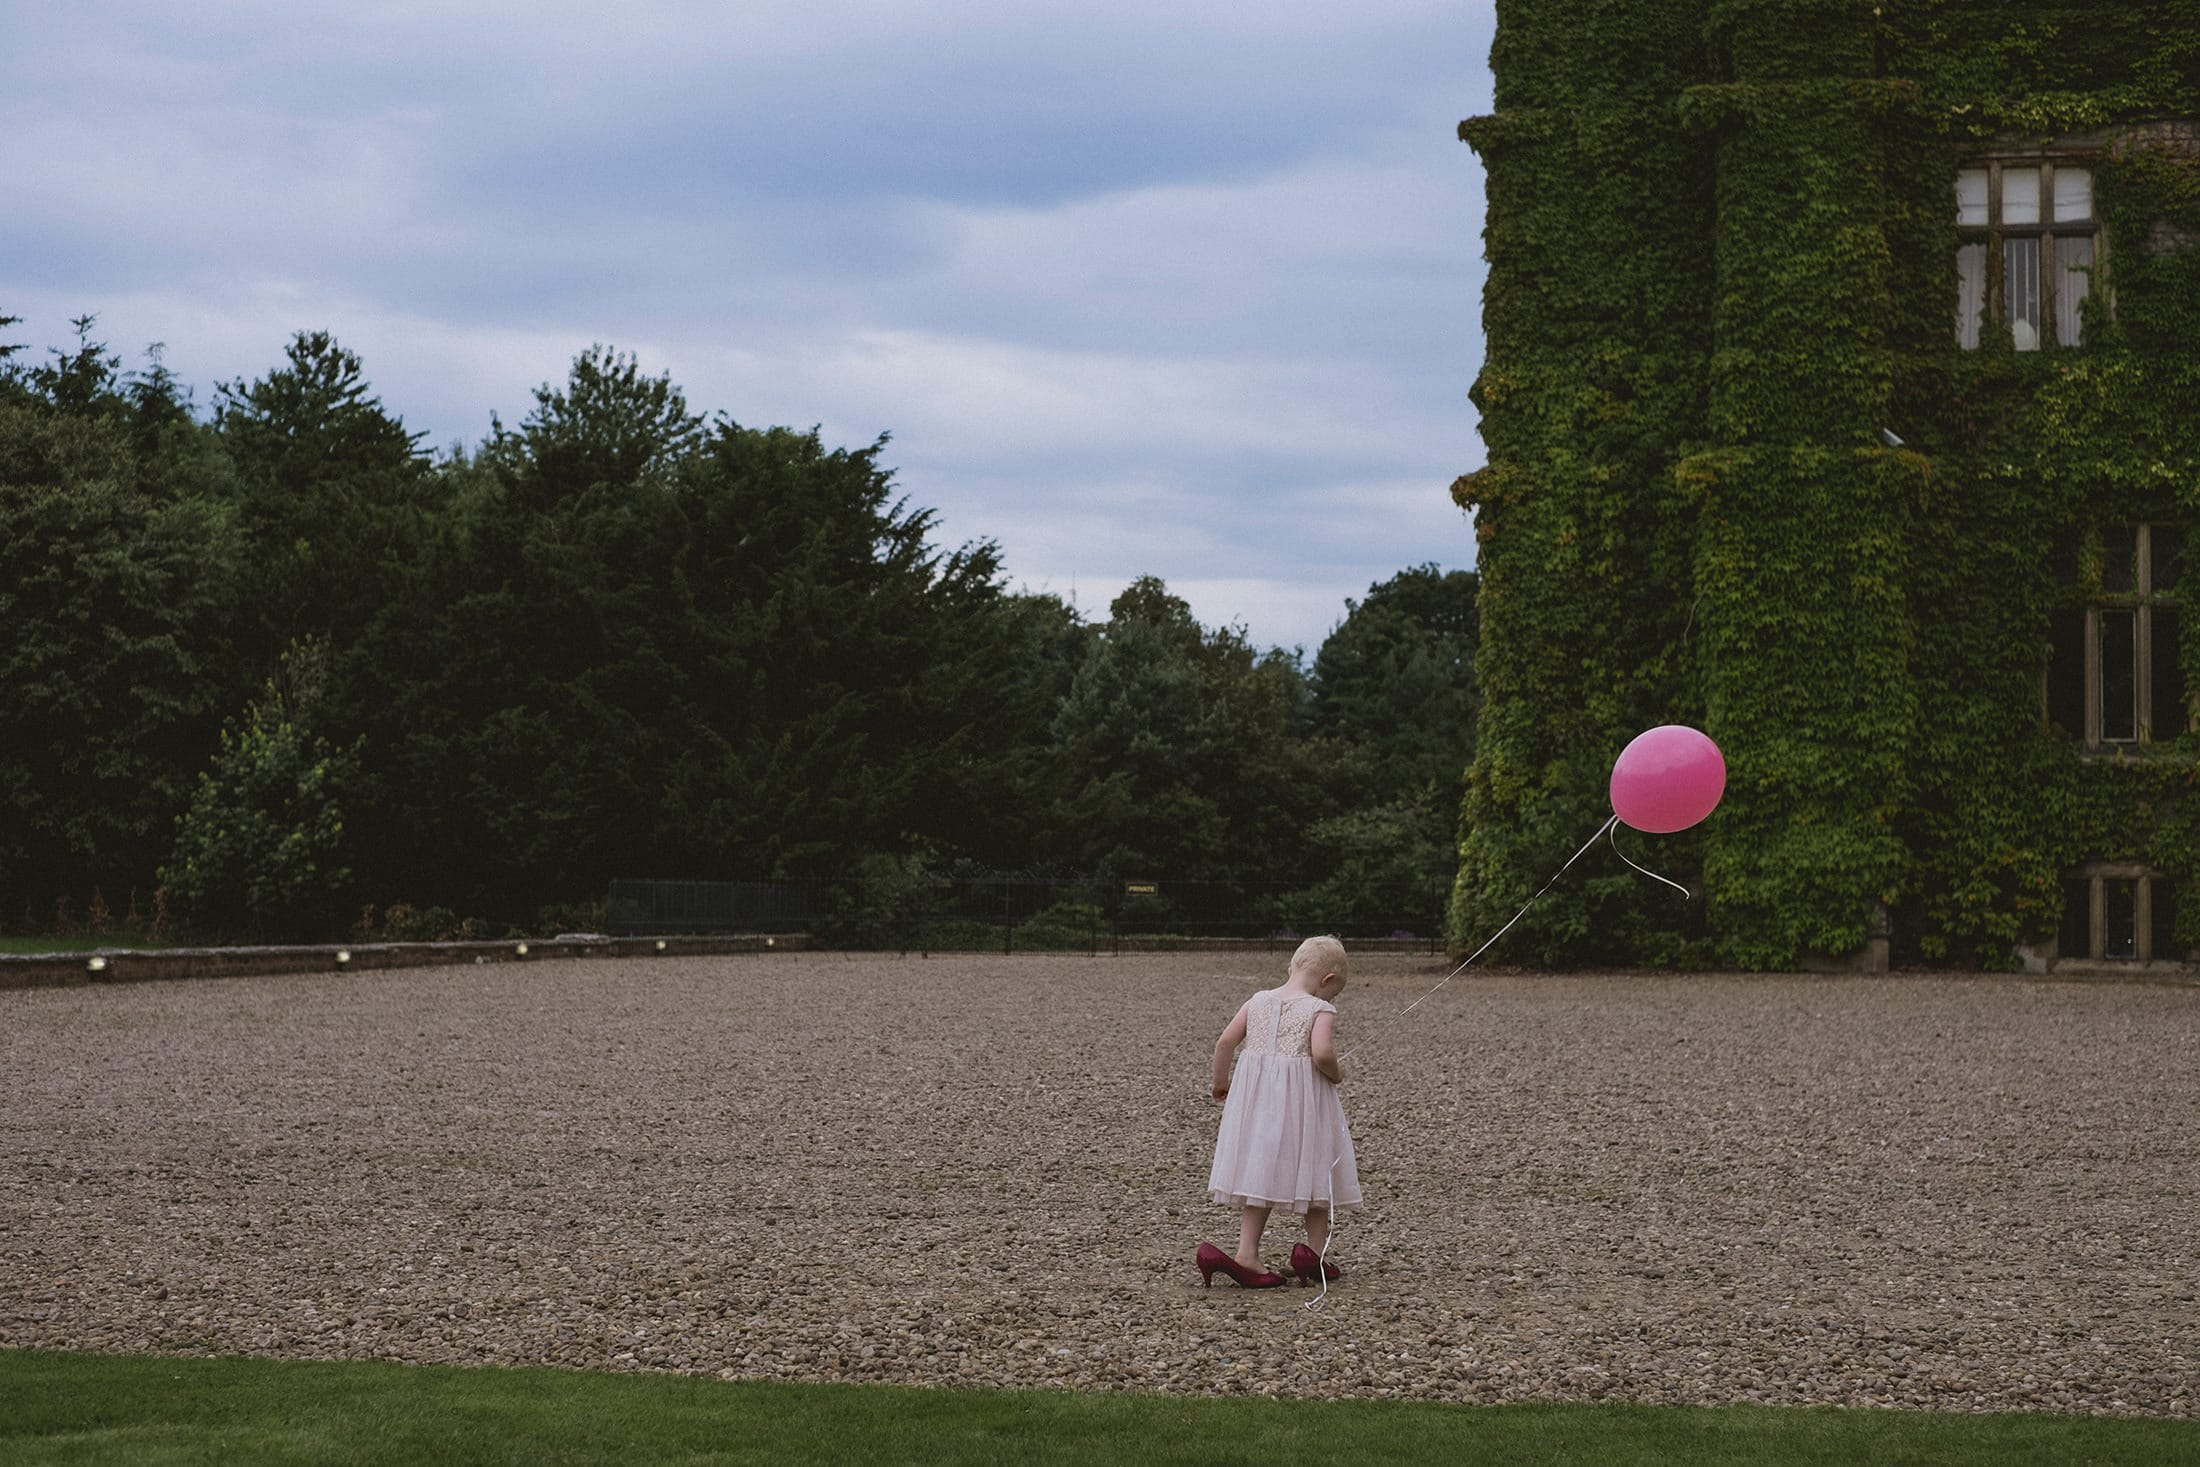 little girl in pink dress walking in high heels holding a balloon